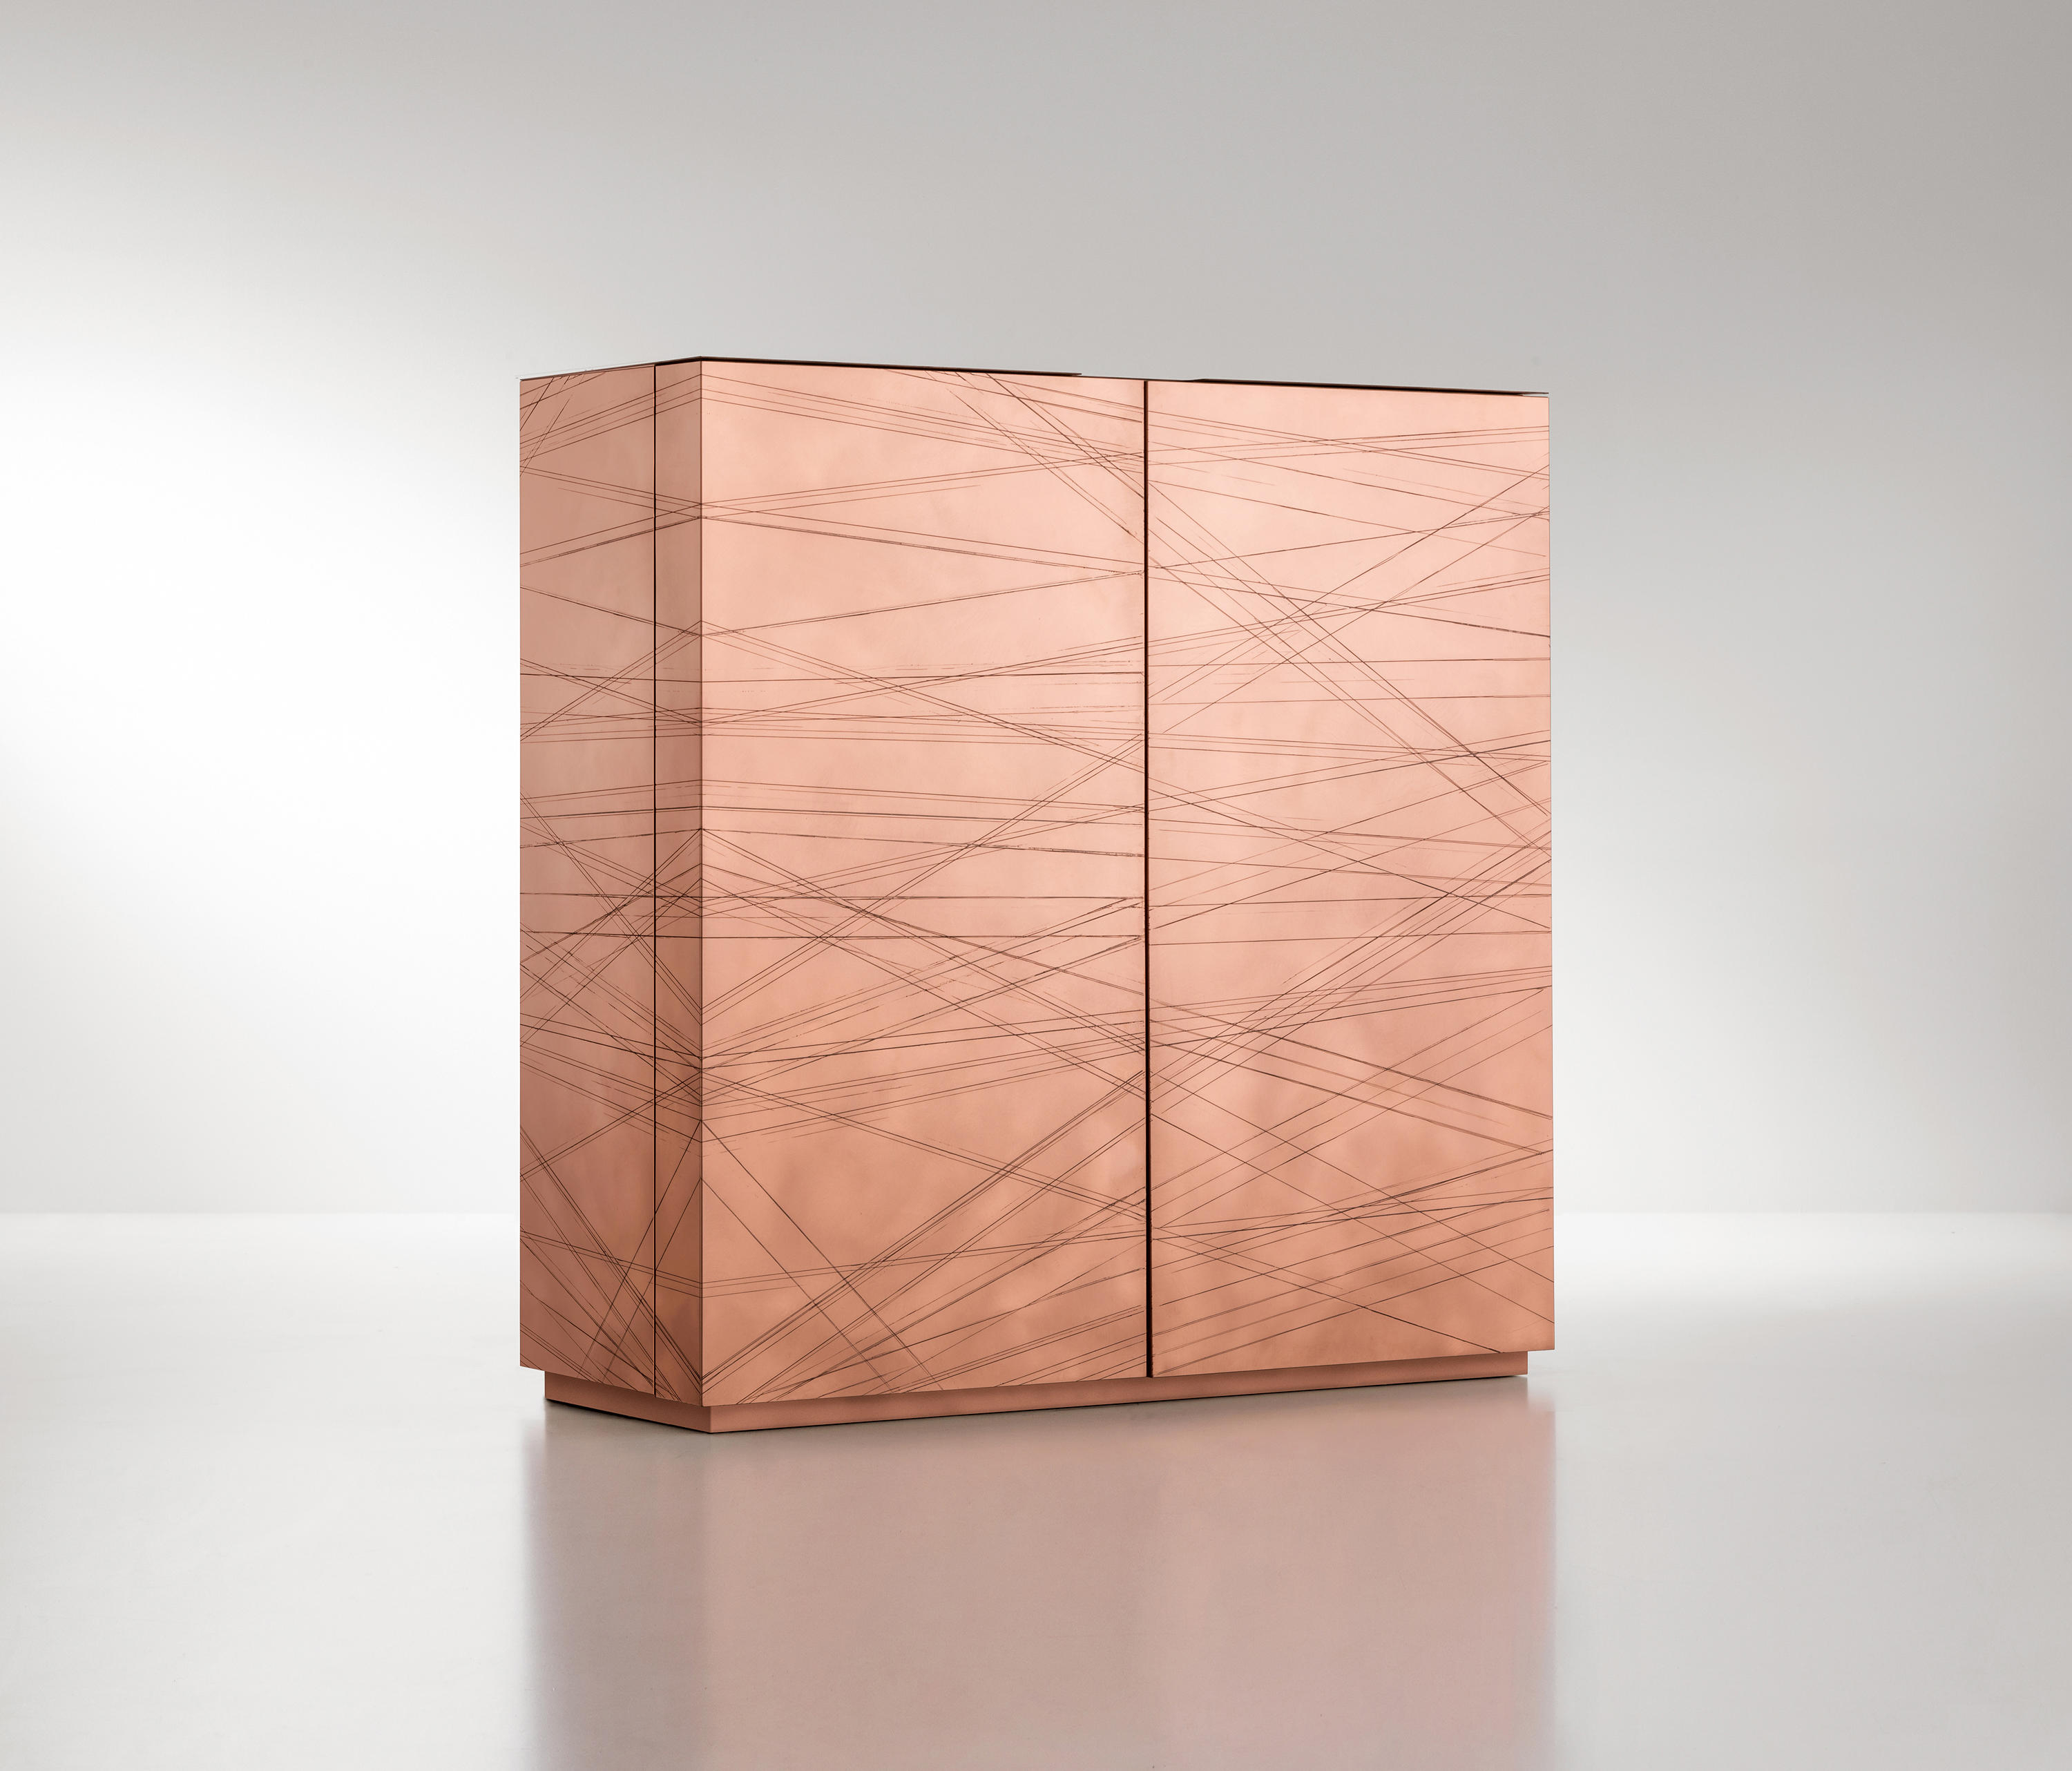 Inspiration about Graffio – Sideboards / Kommoden Von De Castelli | Architonic With Regard To Most Popular Castelli Sideboards (#4 of 20)